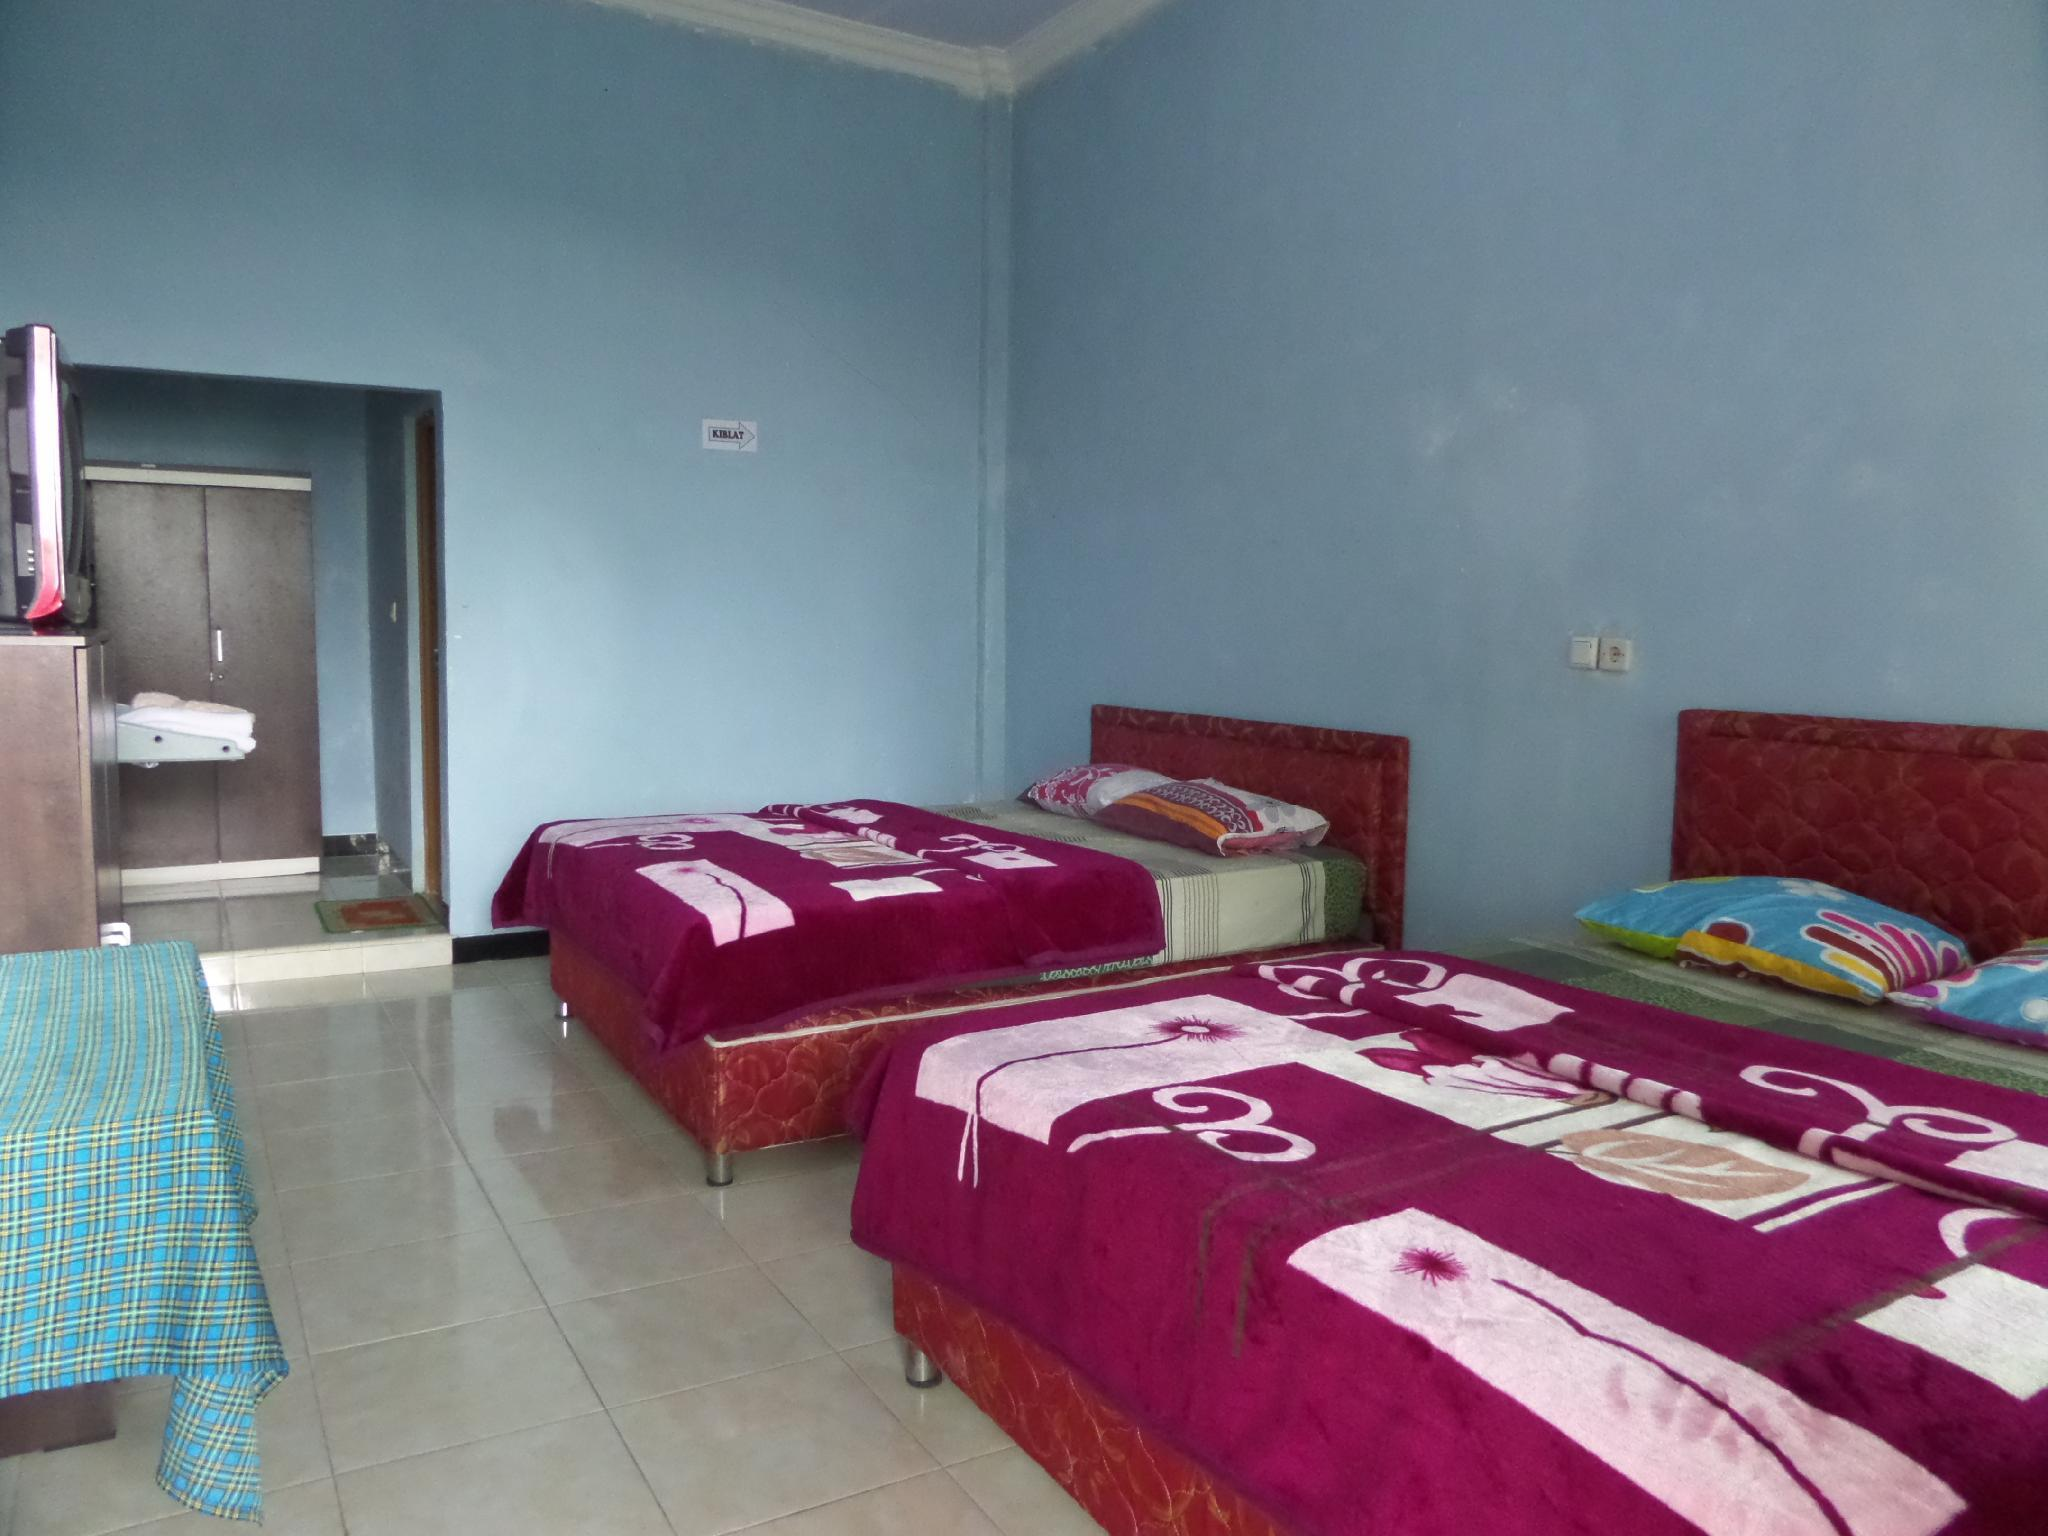 Deluxe With Breakfast 4 Person At Nadia Bromo